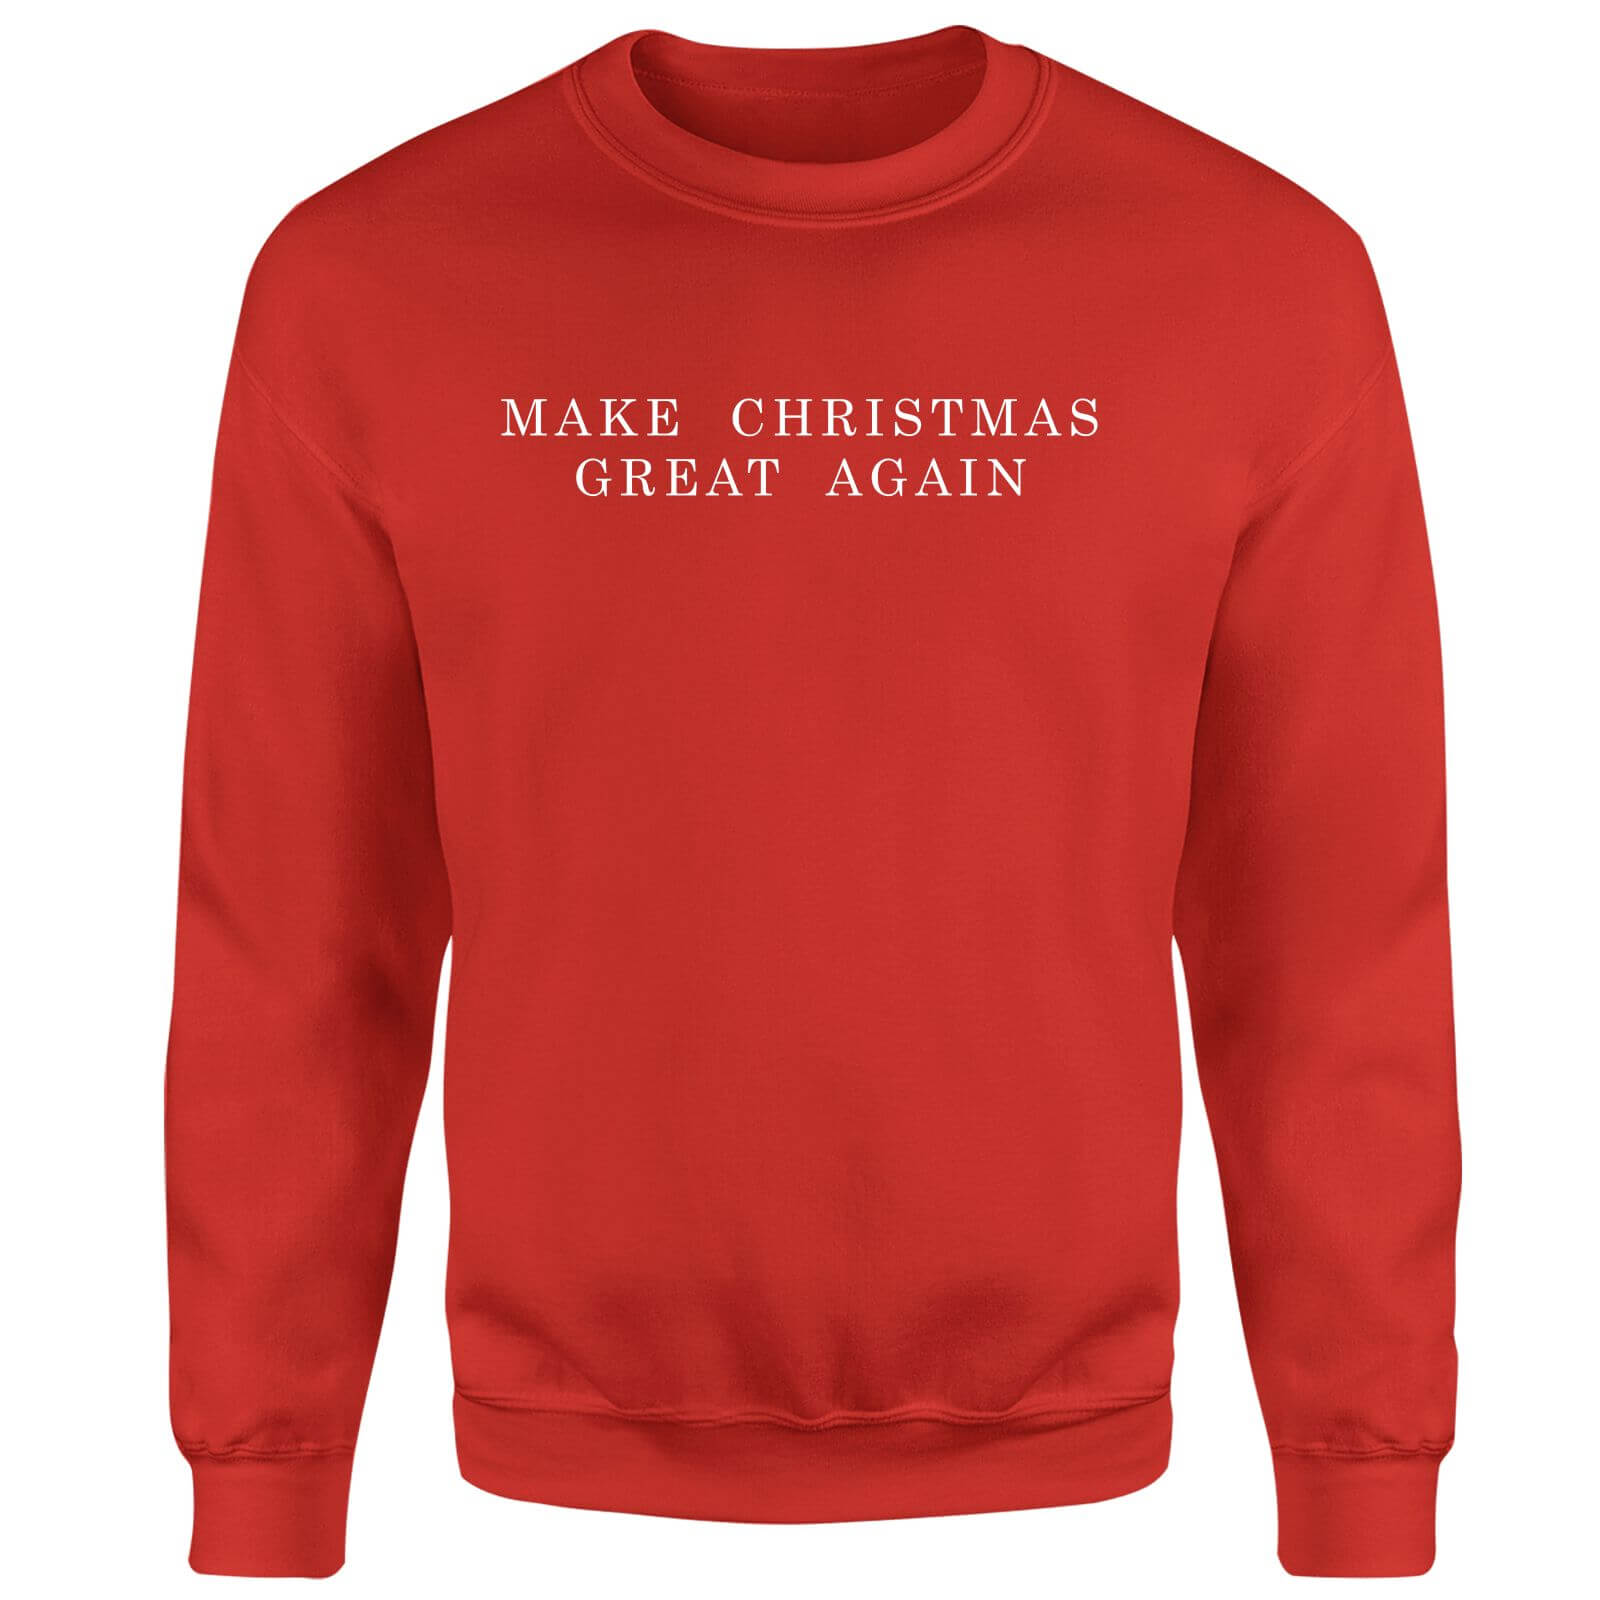 Make Christmas Great Again Sweatshirt - Red